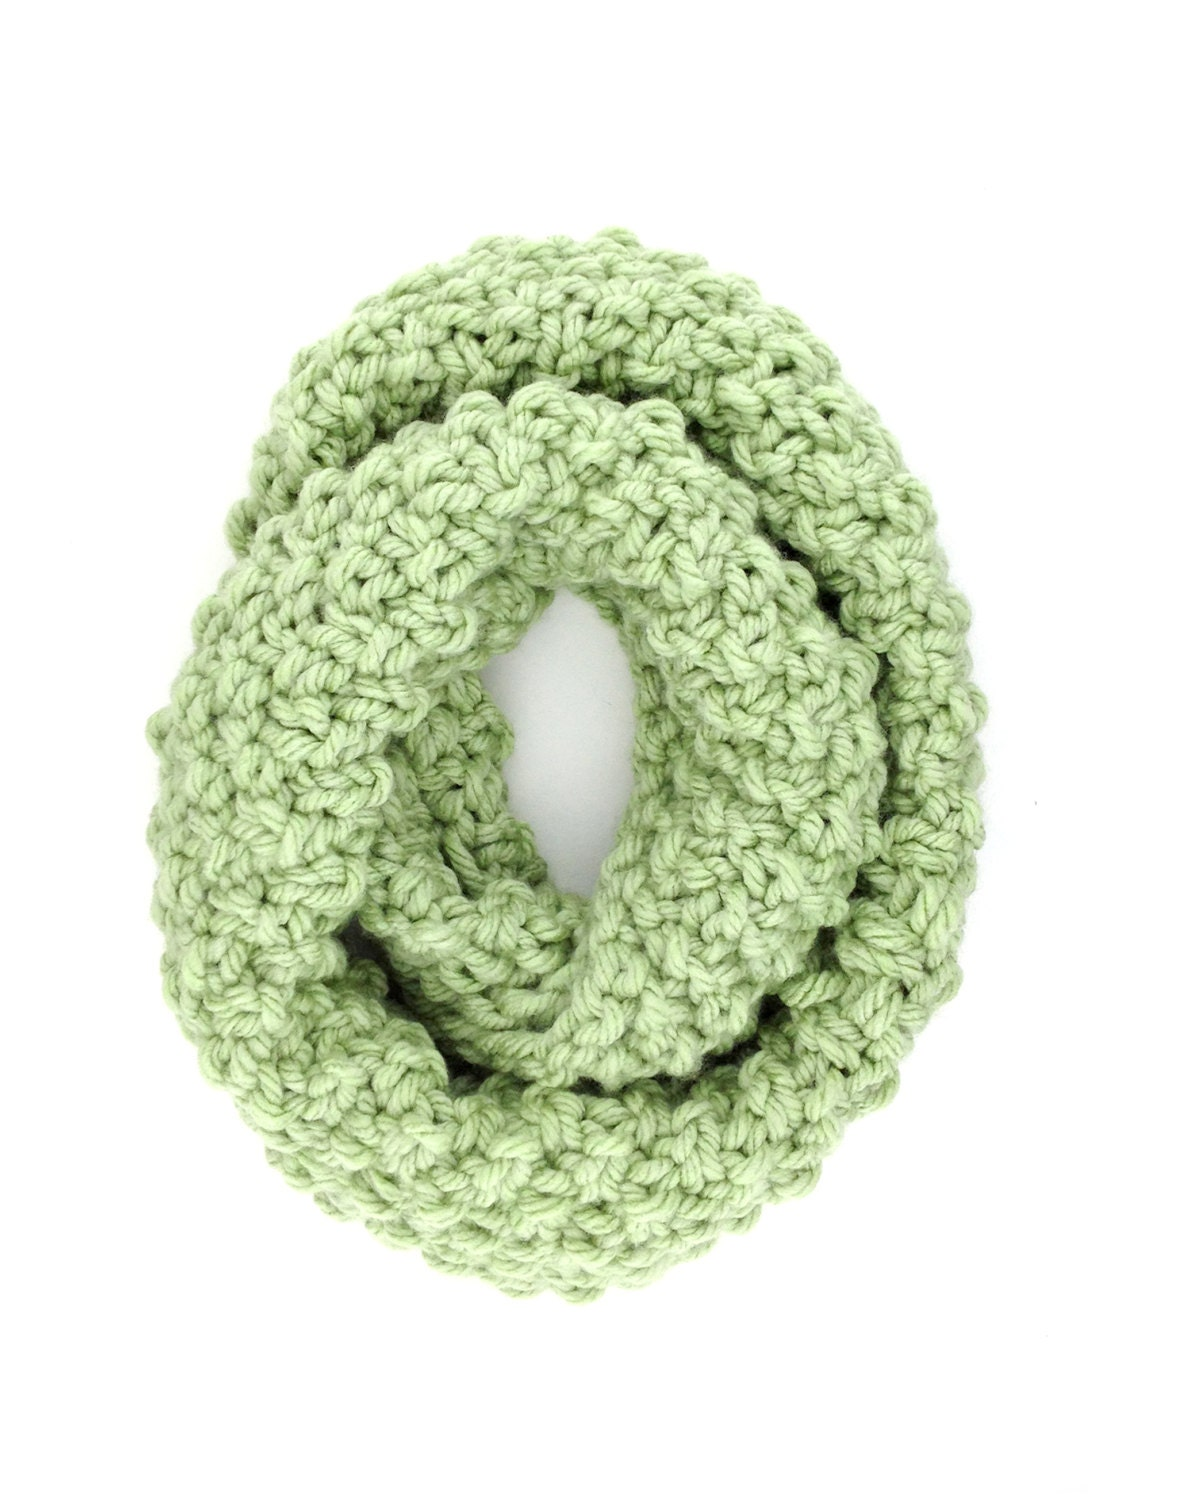 Moss Stitch Scarf Knitting Pattern : Soft Acrylic Moss Stitch Knit Infinity Scarf by DaniSchaferDesigns